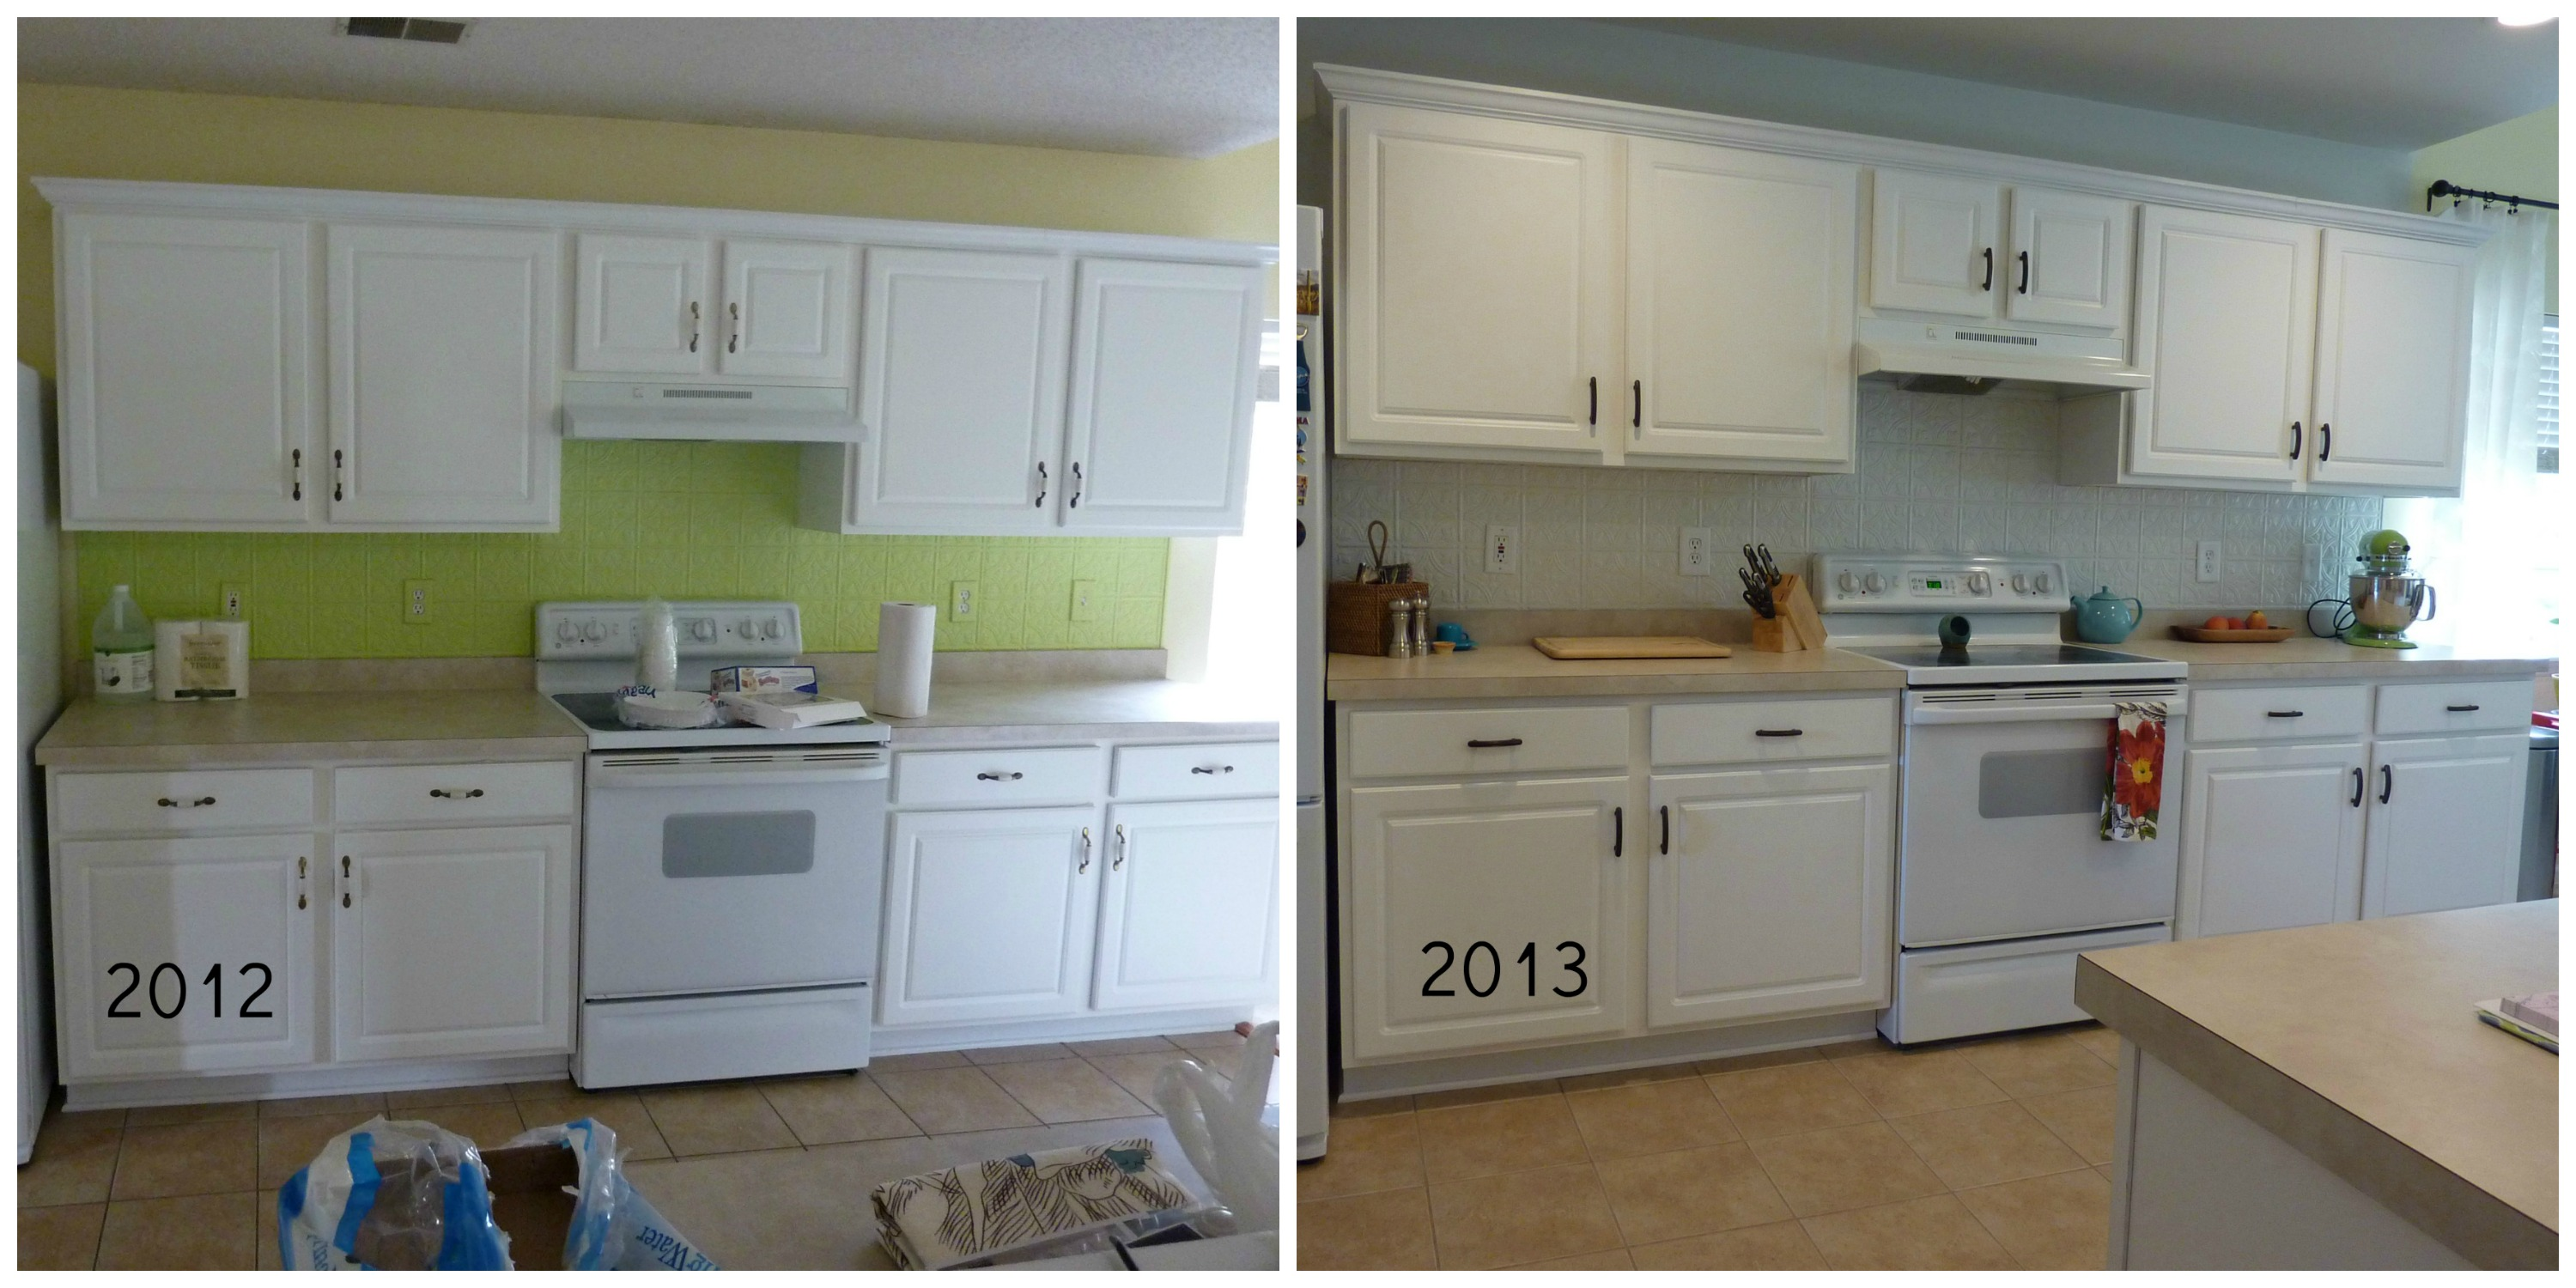 what a difference a year makes fluorescent kitchen lights Lastly we recently finished what I call Phase 1 of our kitchen remodel This is the we re broke but have to make the kitchen more tolerable until we win